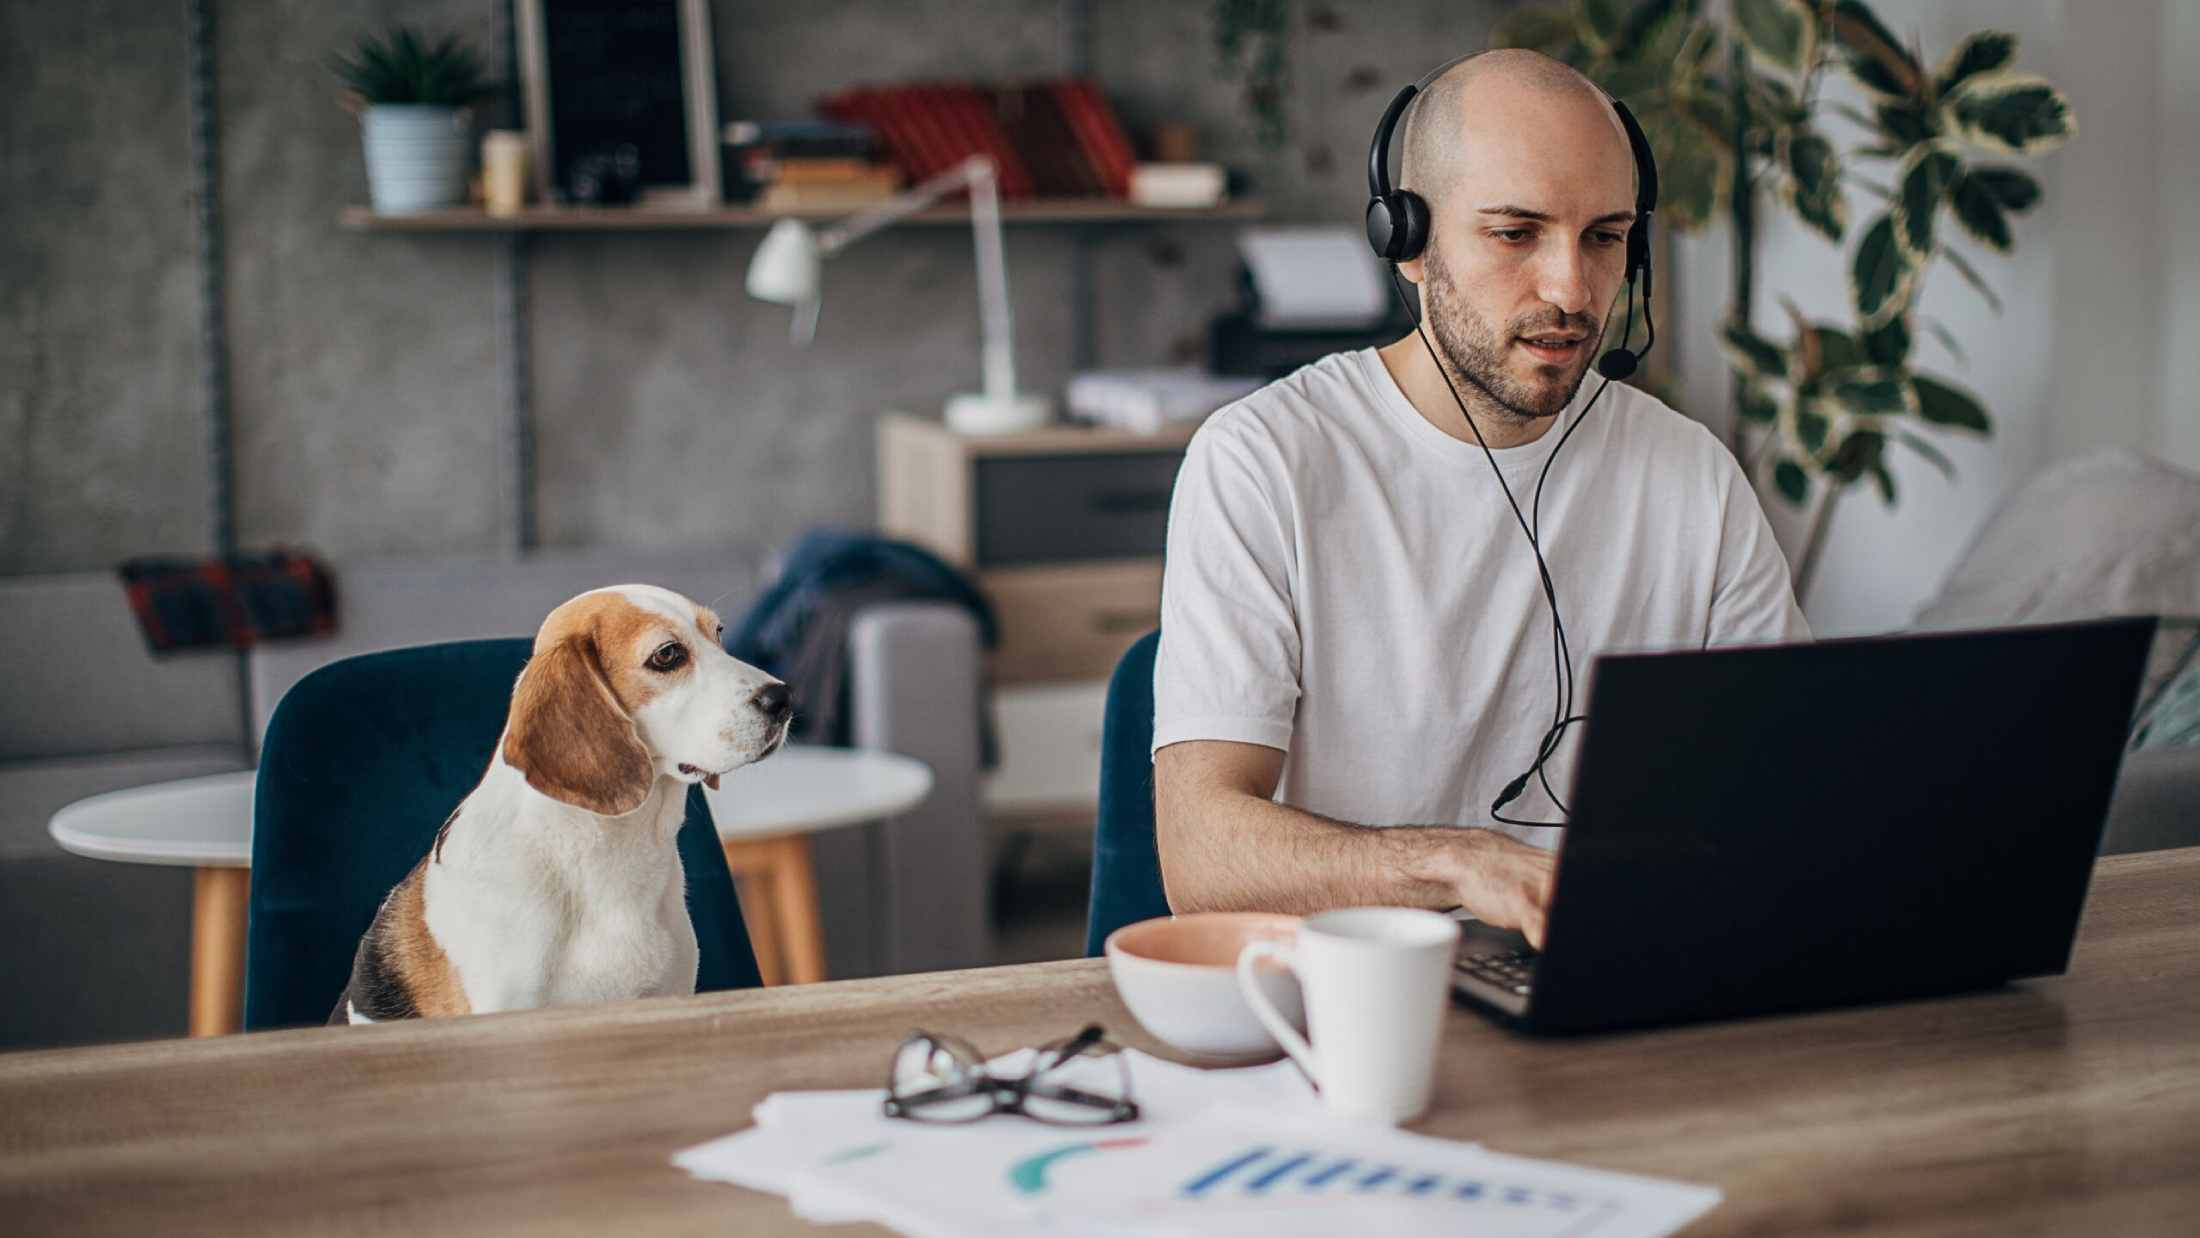 Middle aged man working on his laptop while a dog watches